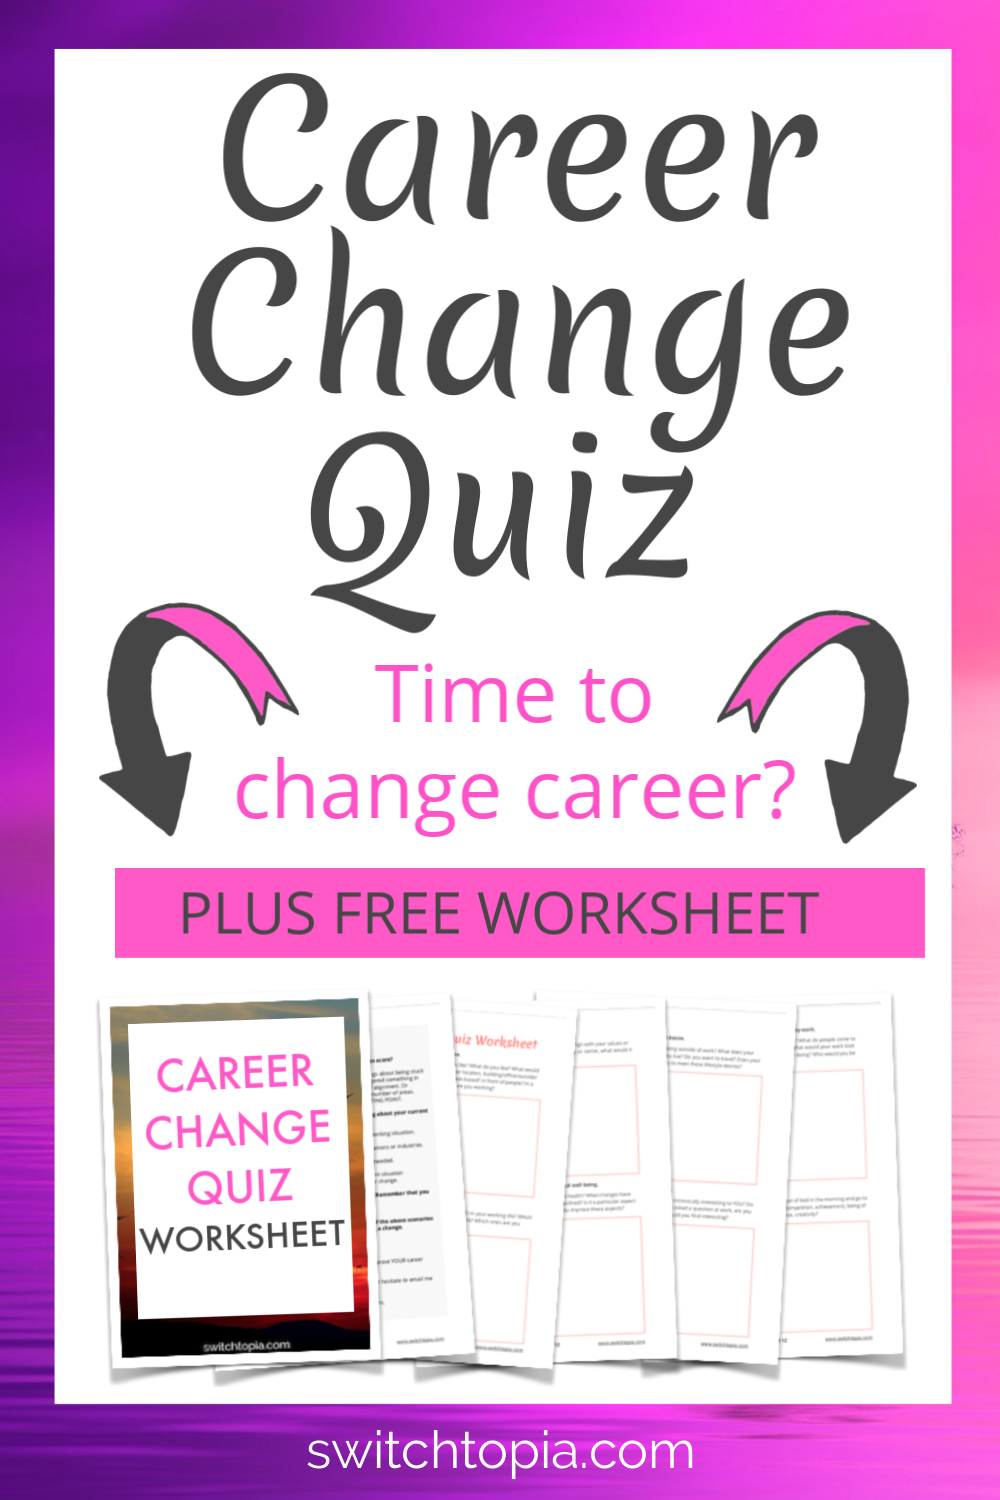 Wondering if it is time for a new career? Take this Career Change Quiz and find out if it really is time to change career! You will receive career change advice and a free worksheet to give you the motivation for your career change.